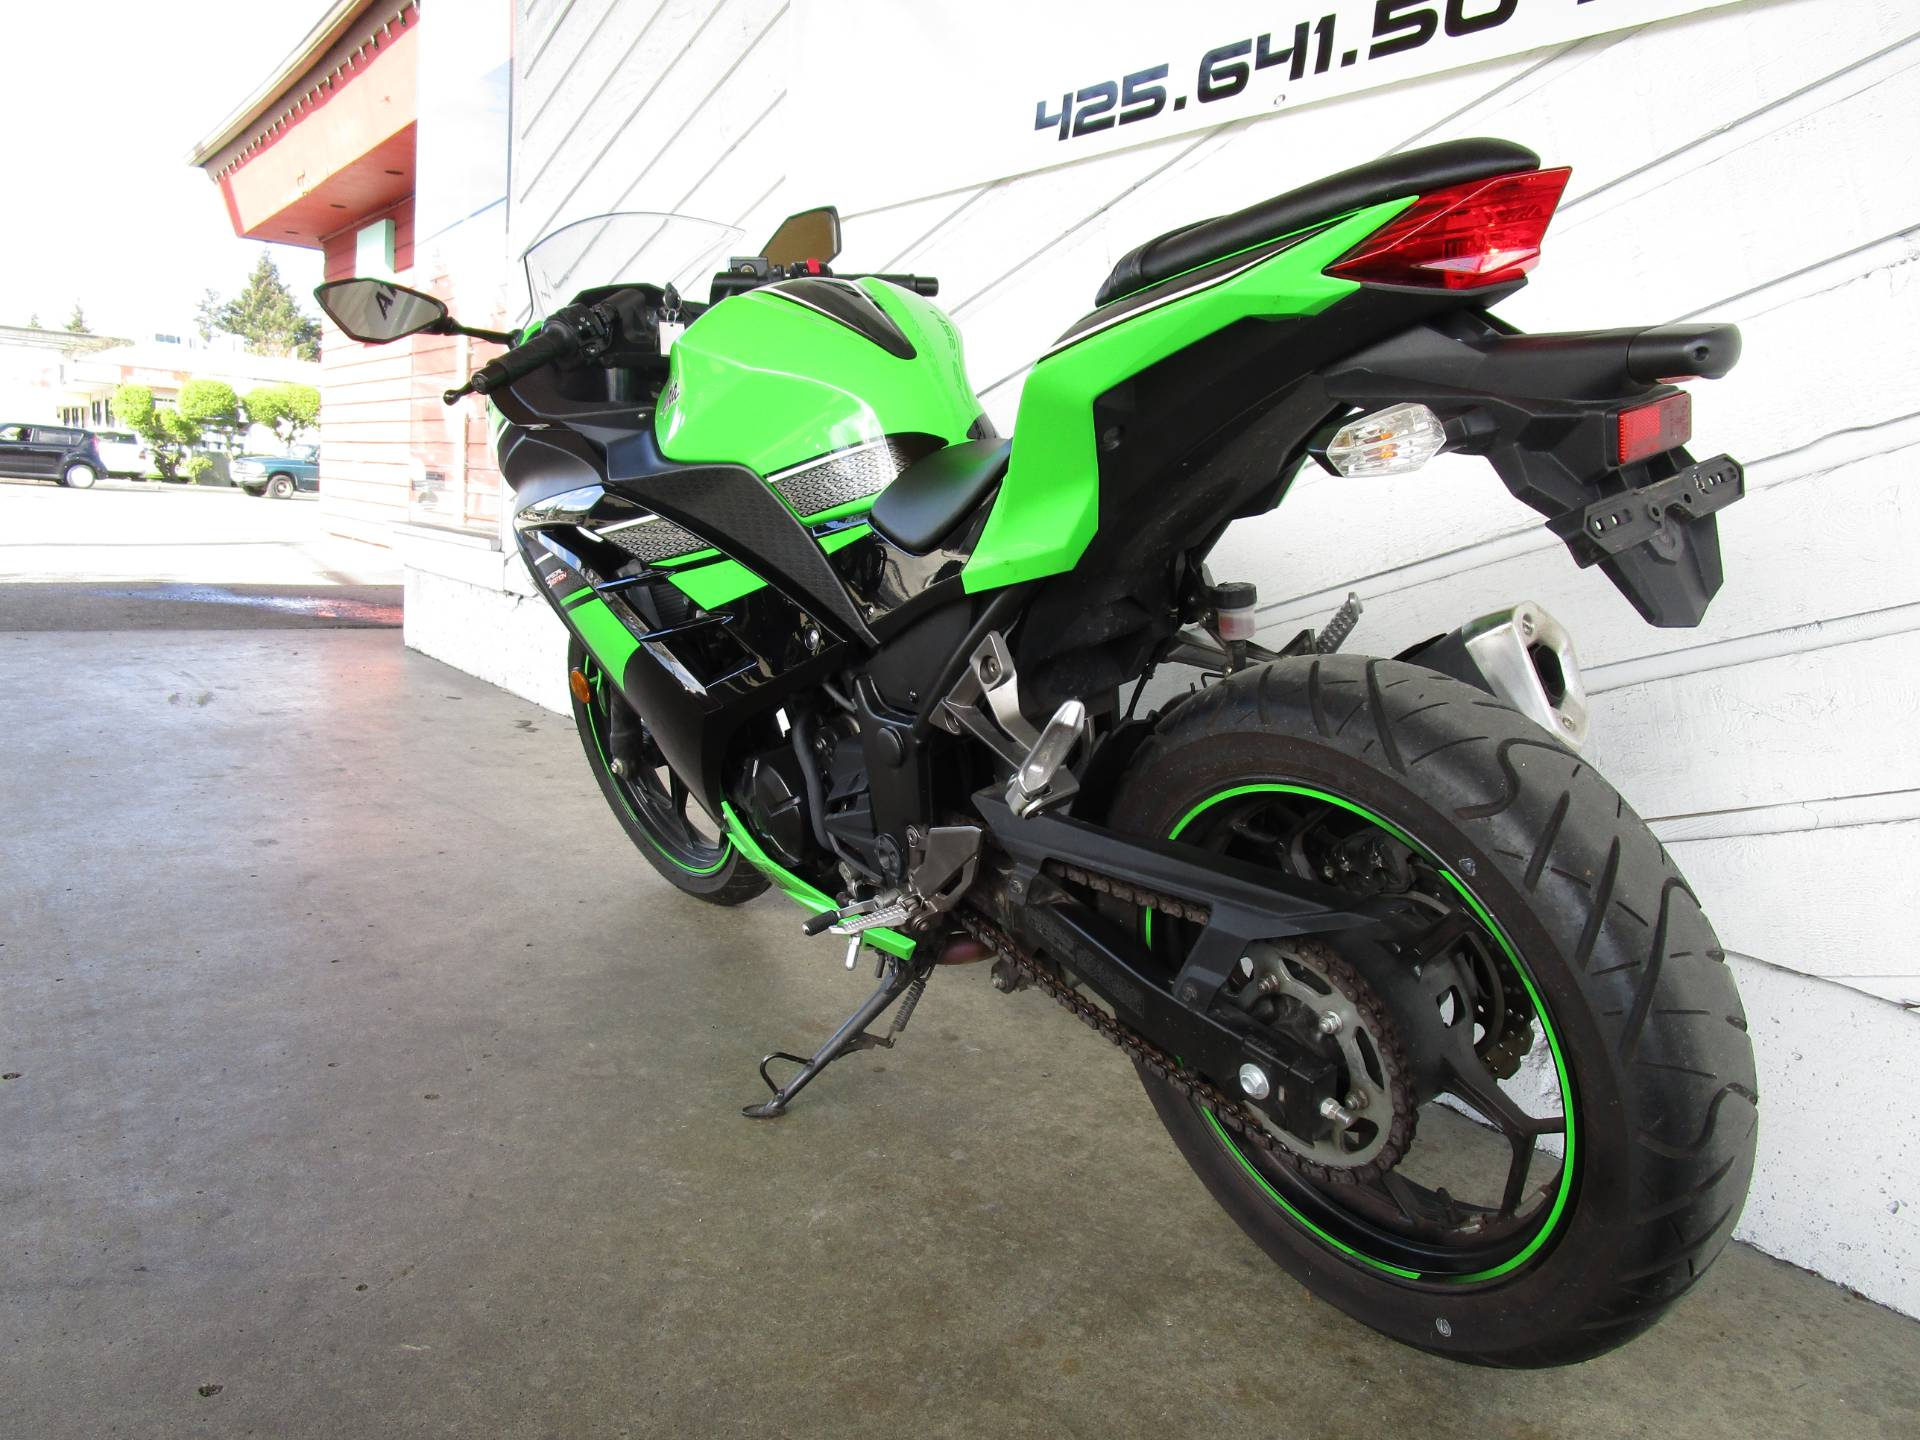 2014 Kawasaki Ninja® 300 SE in Bellevue, Washington